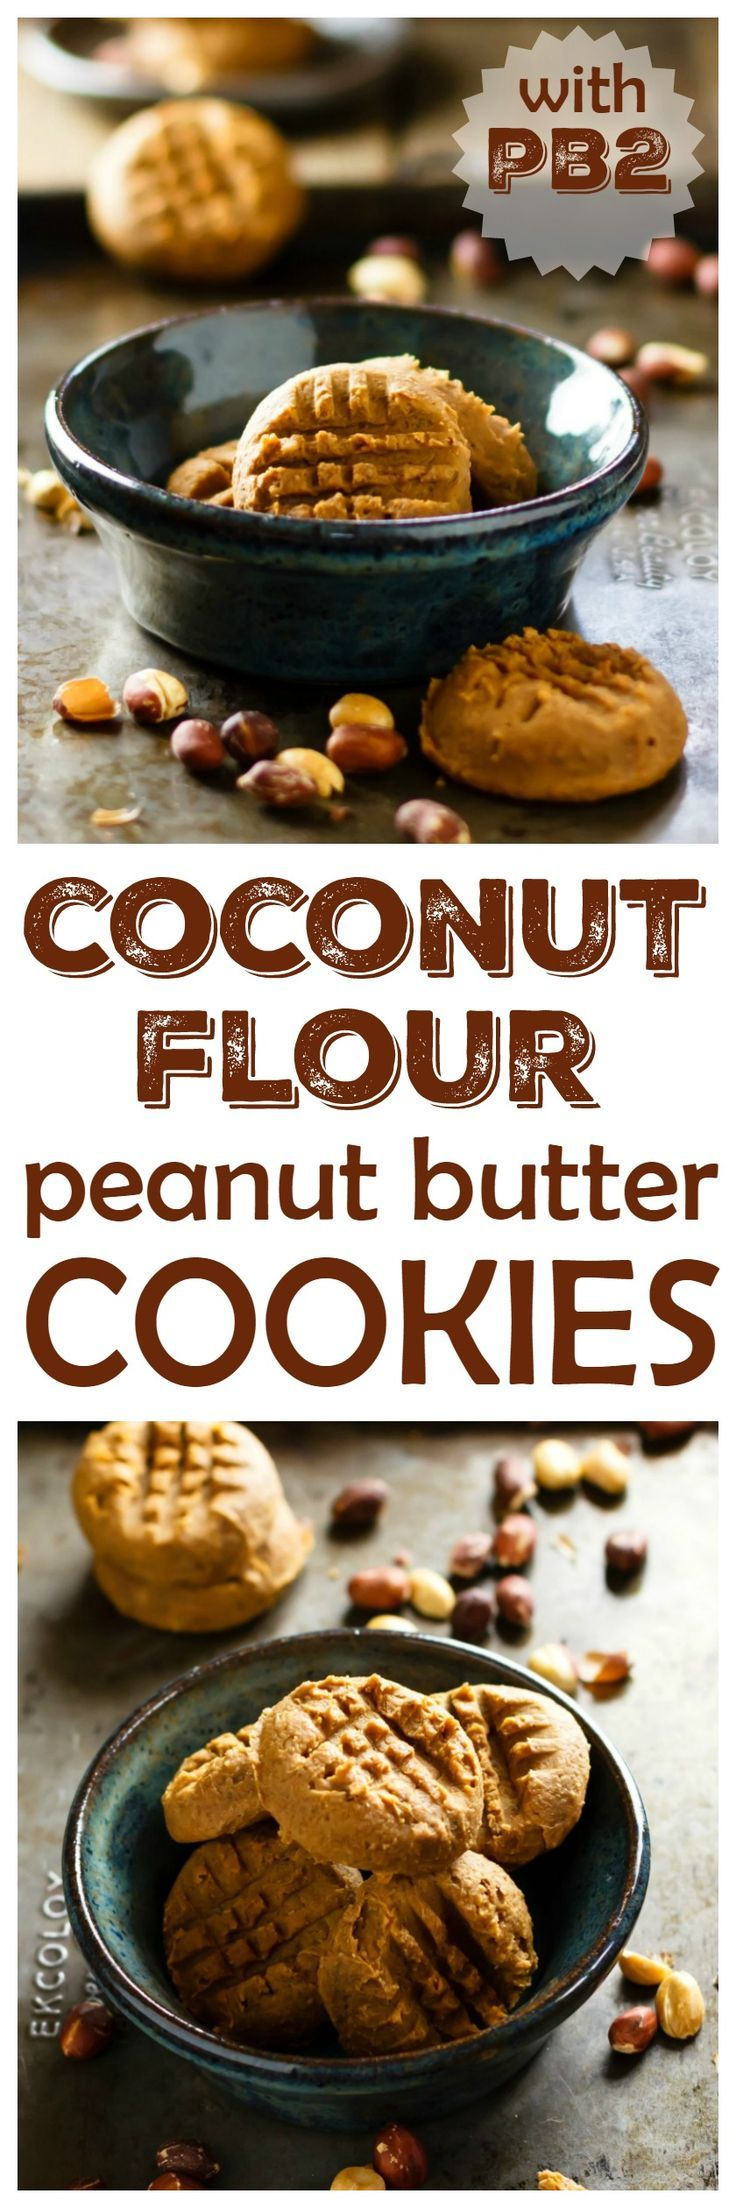 If you love coconut and peanut butter, my coconut flour peanut butter cookies are for you! I use PB2 for bold peanut butter taste with a lot less fat and calories. Vegan and gluten free! | eathealthyeathappy.com